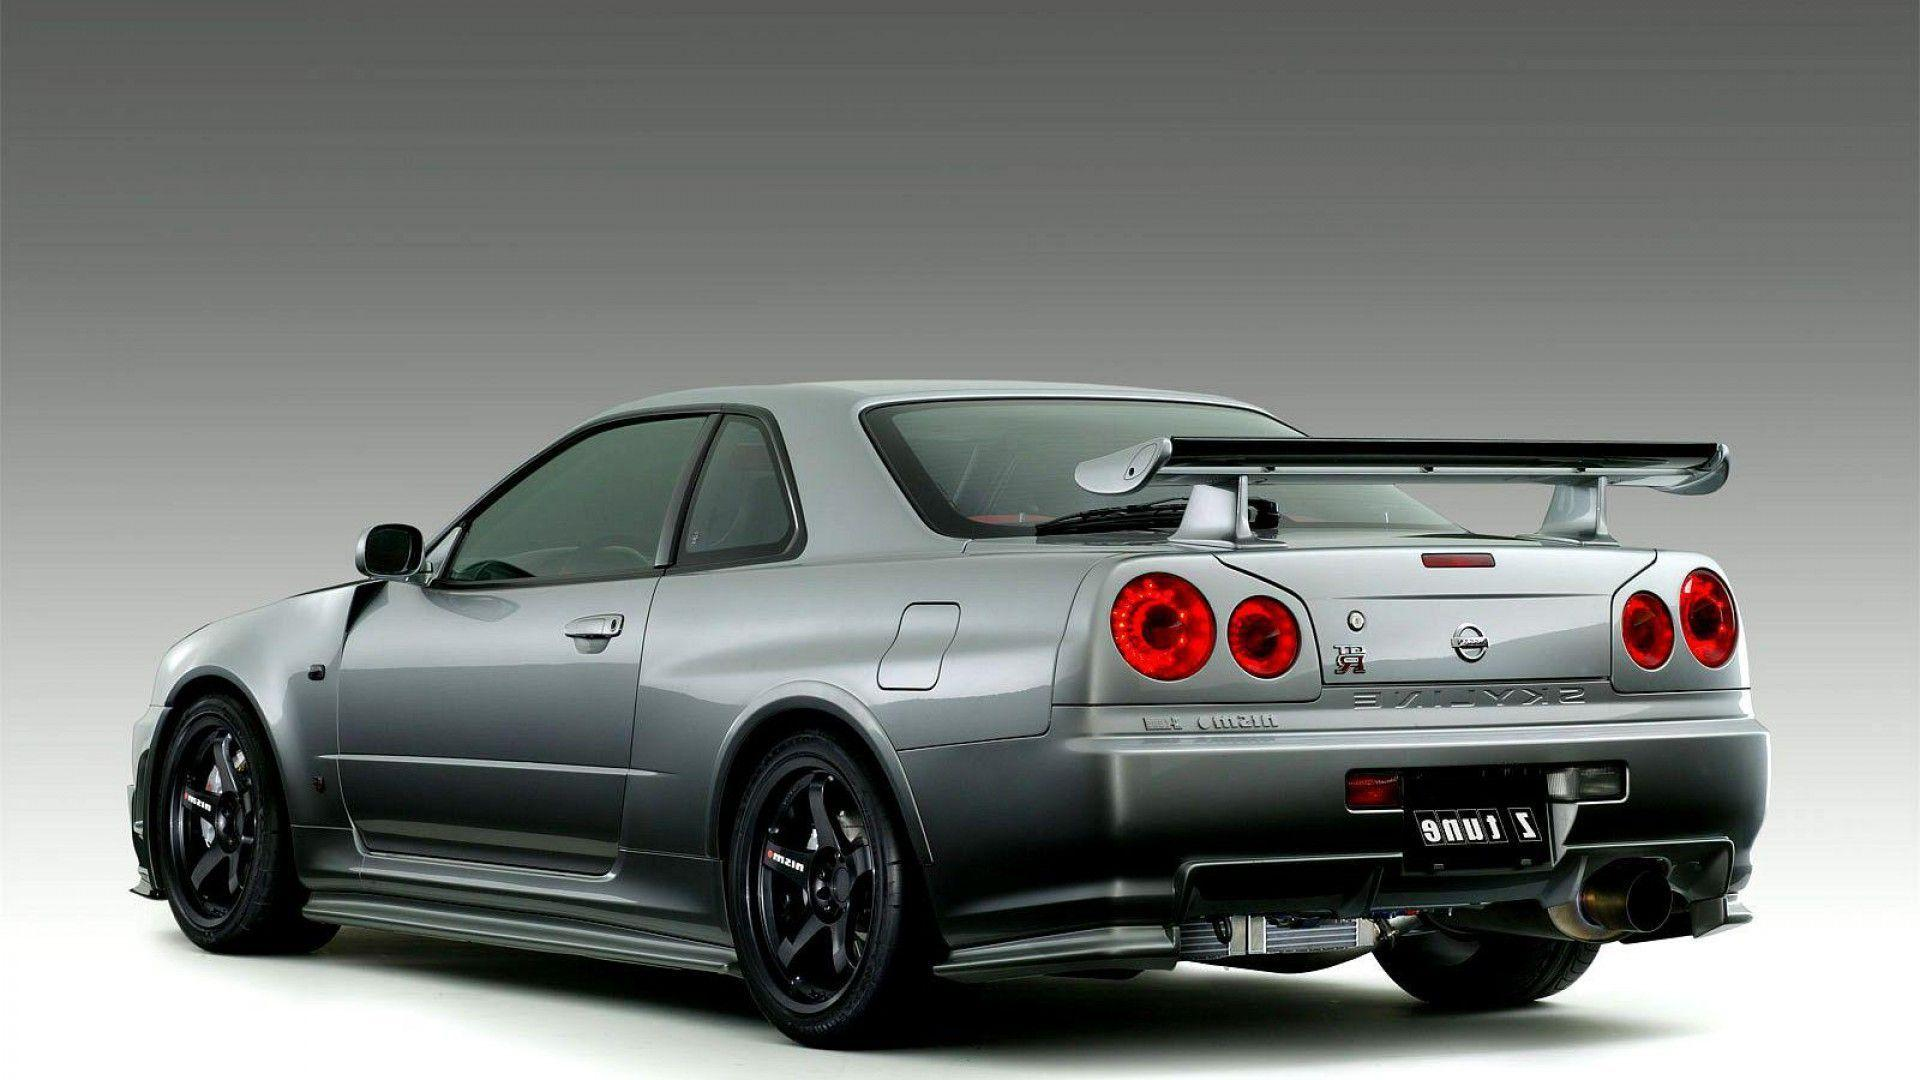 Cars Nissan Skyline R34 Nismo Wallpapers 1920x1080